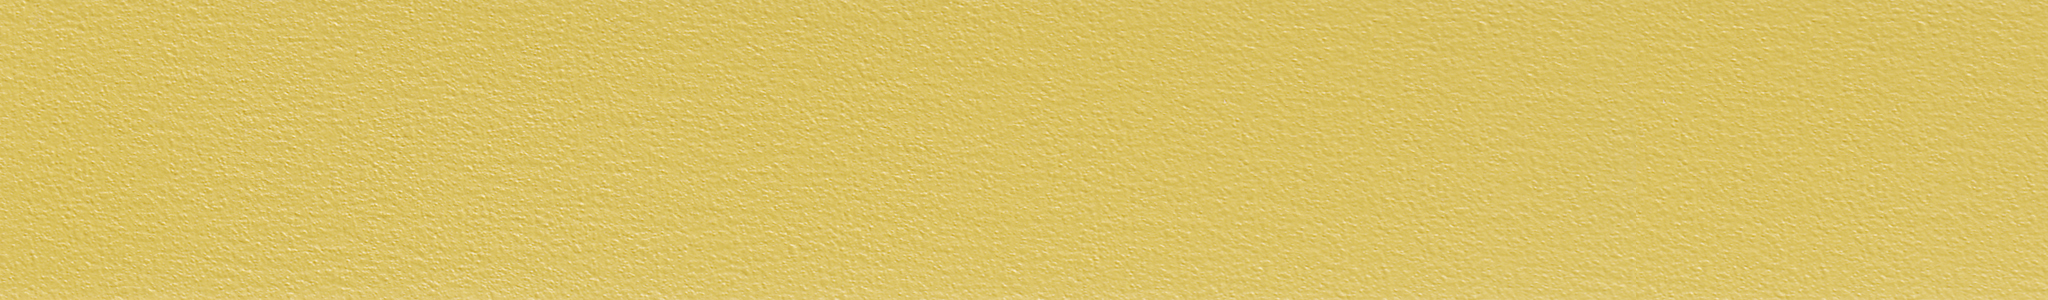 HU 113986 ABS Edge Yellow Soft Pearl 107